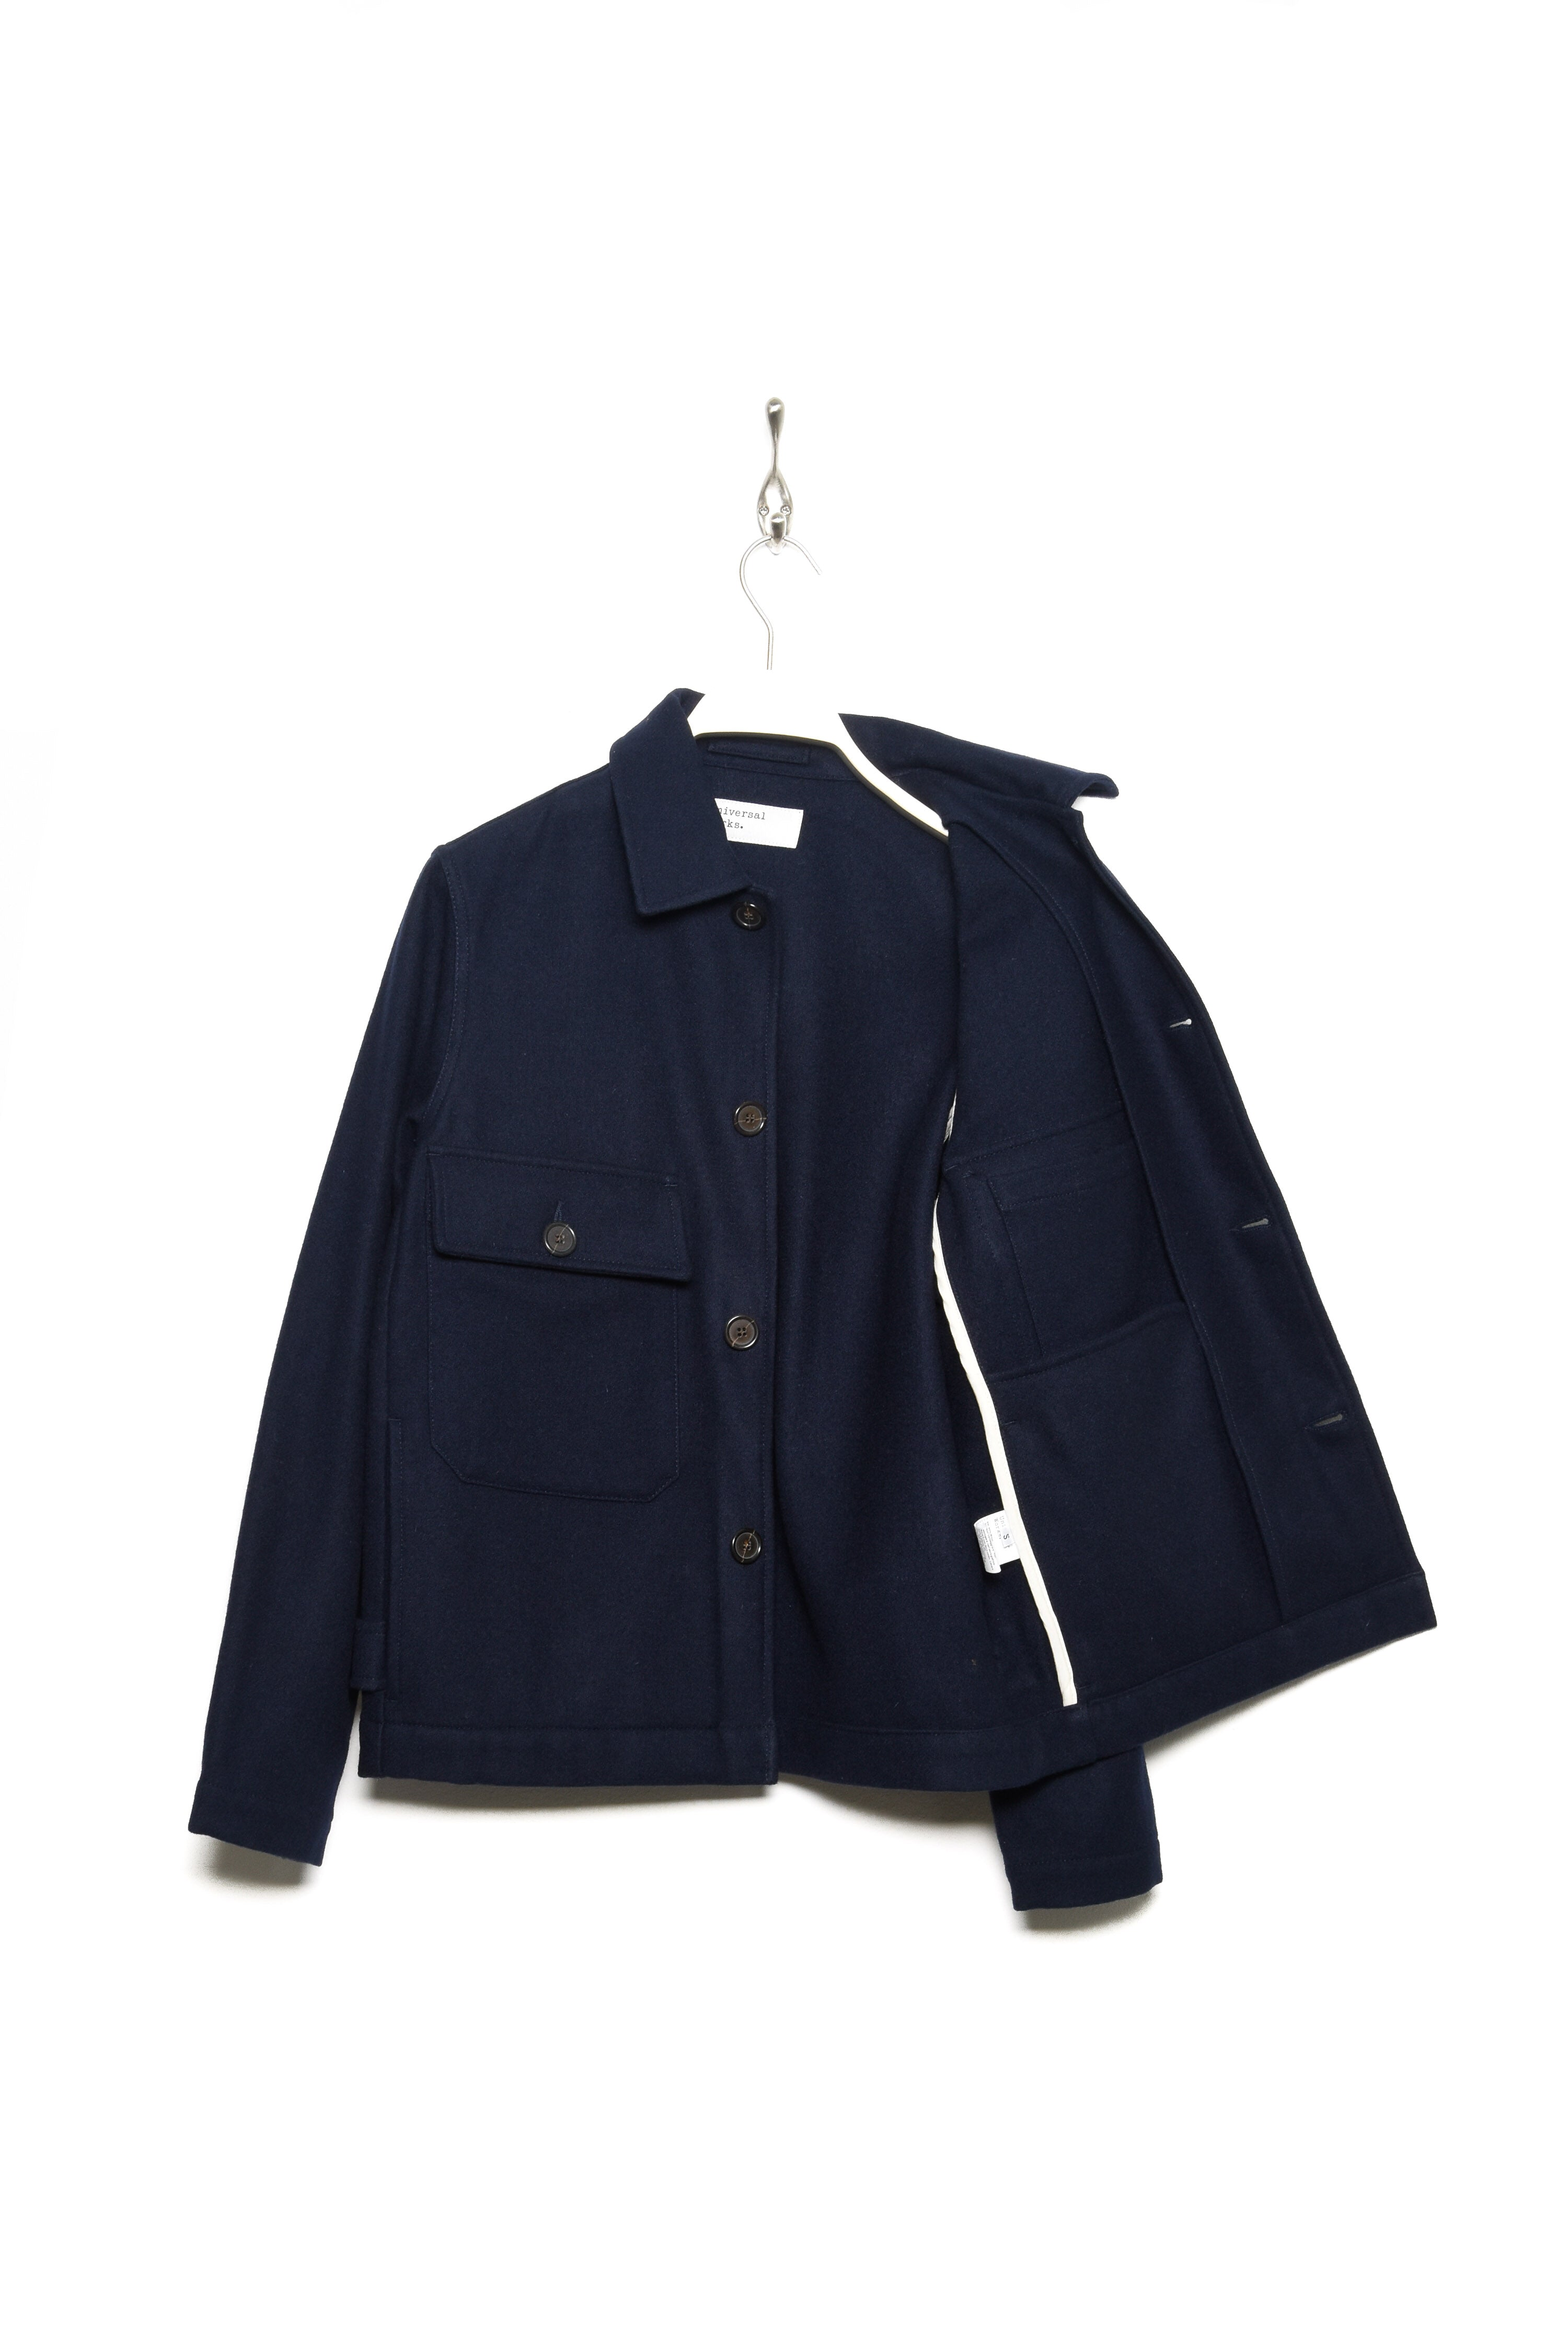 Strummer Jacket Melton 23505 navy